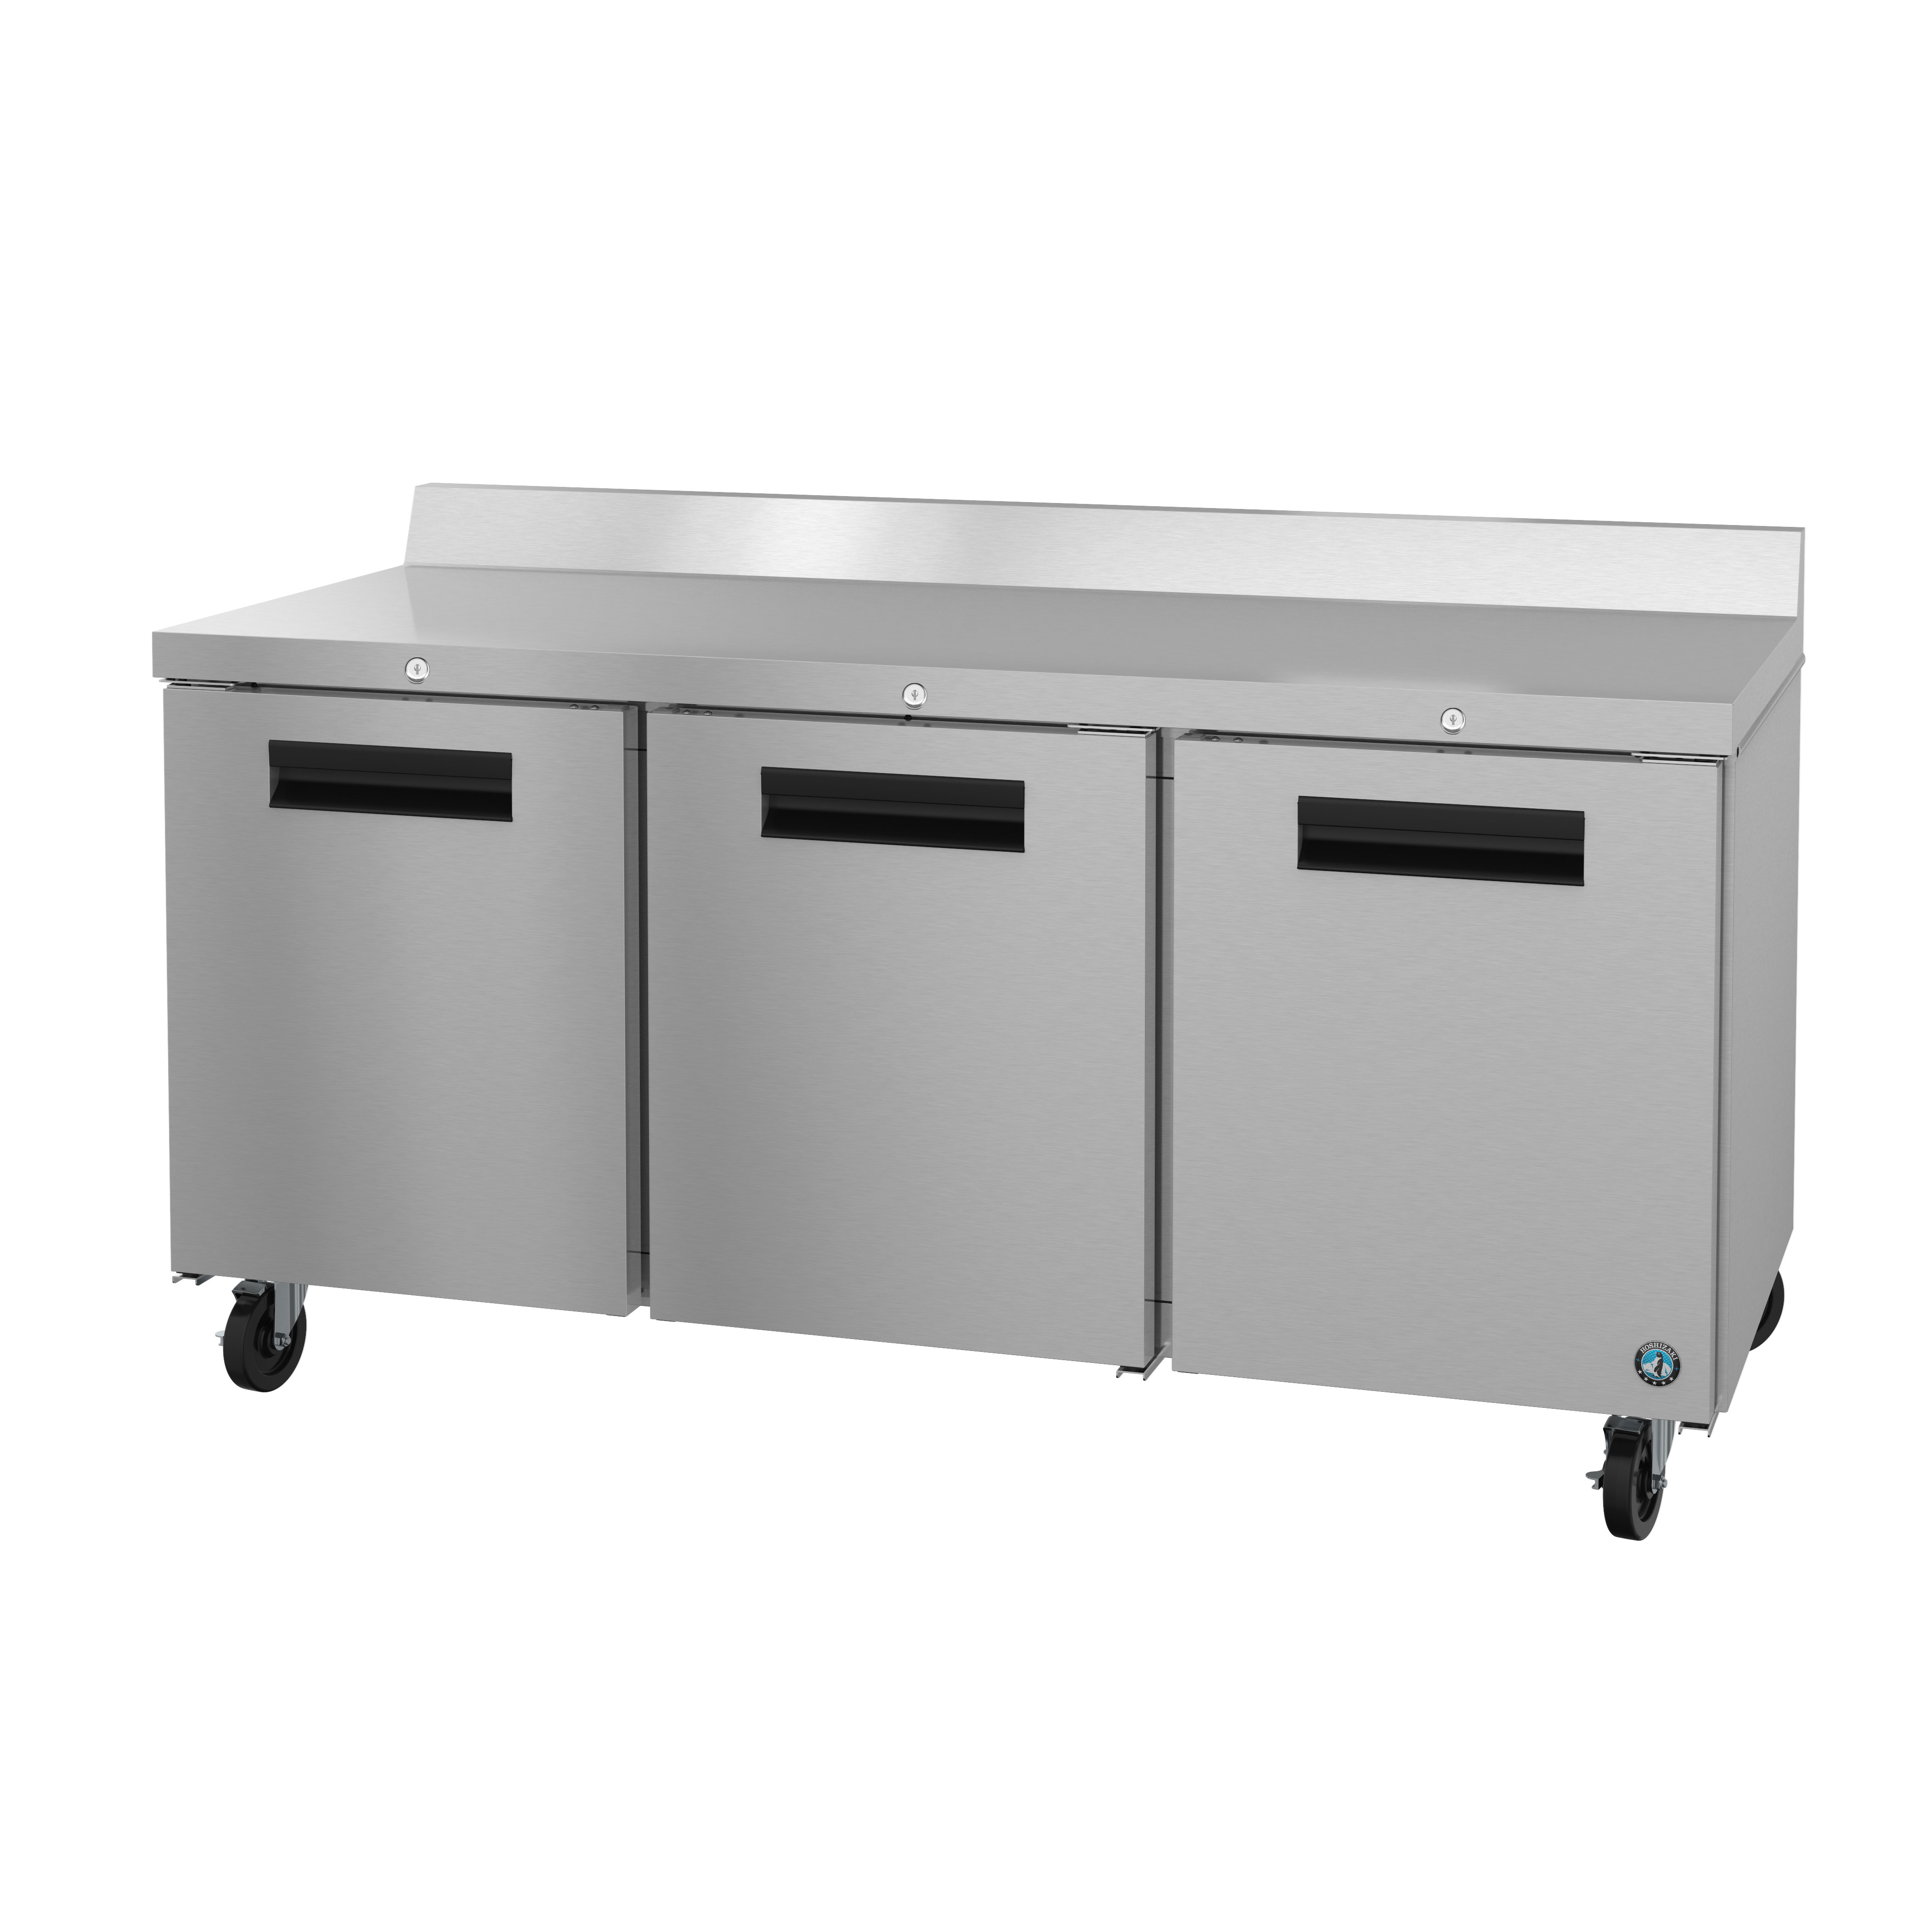 Hoshizaki WR72A-01 refrigerated counter, work top